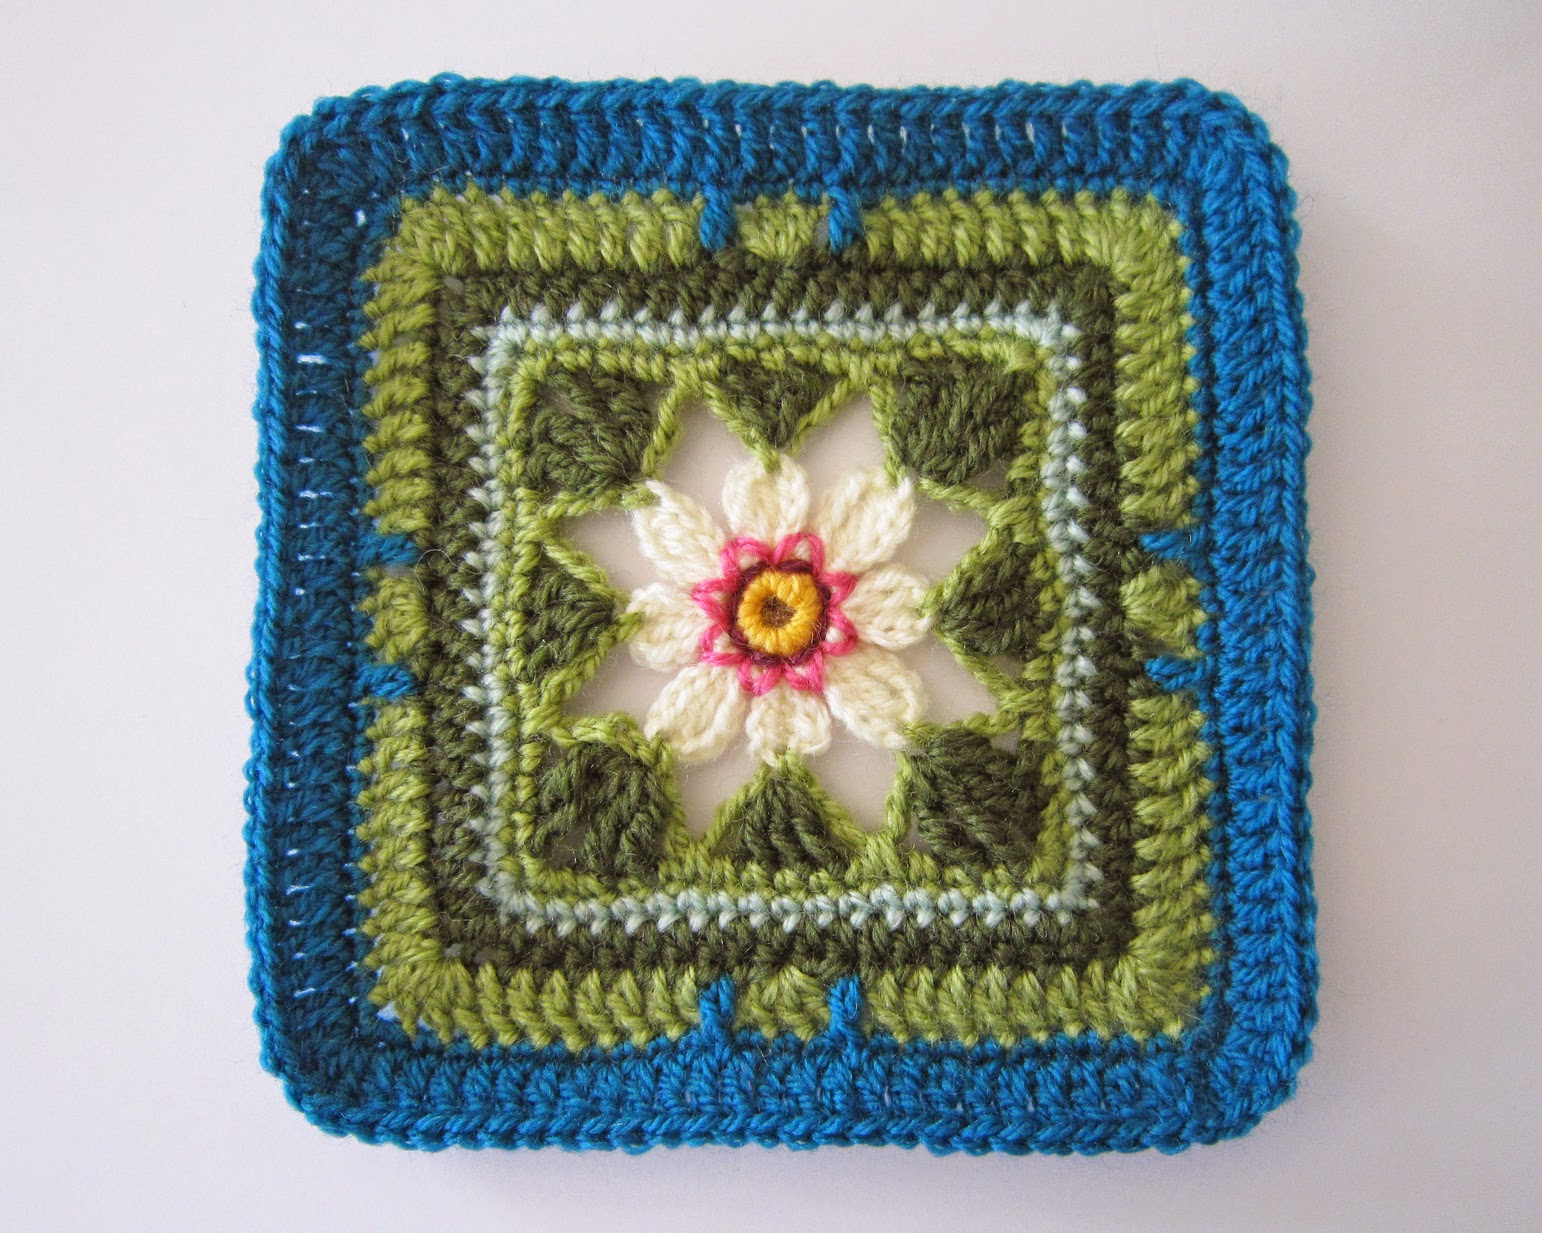 Knit Crochet Design Lily Pond Cal Block Two